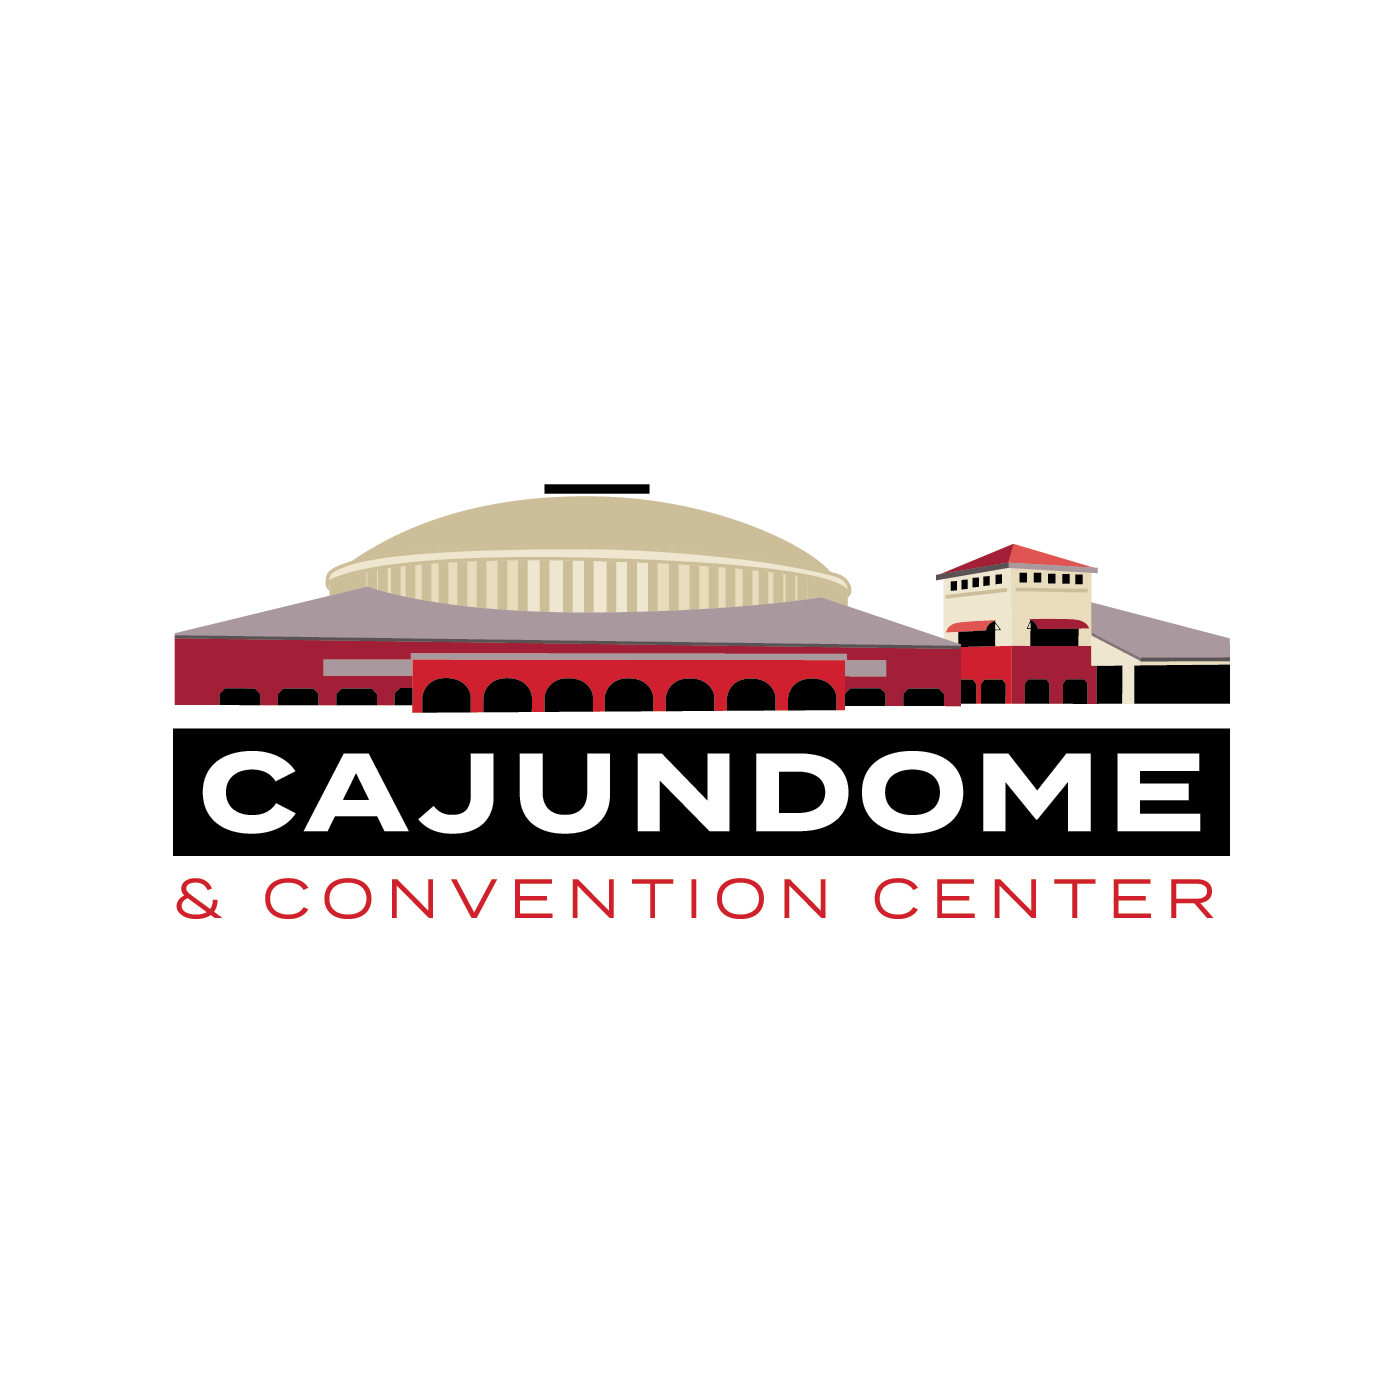 Cajundome_darkbackground_blackbar_fullwhiteoutline_RGB.png